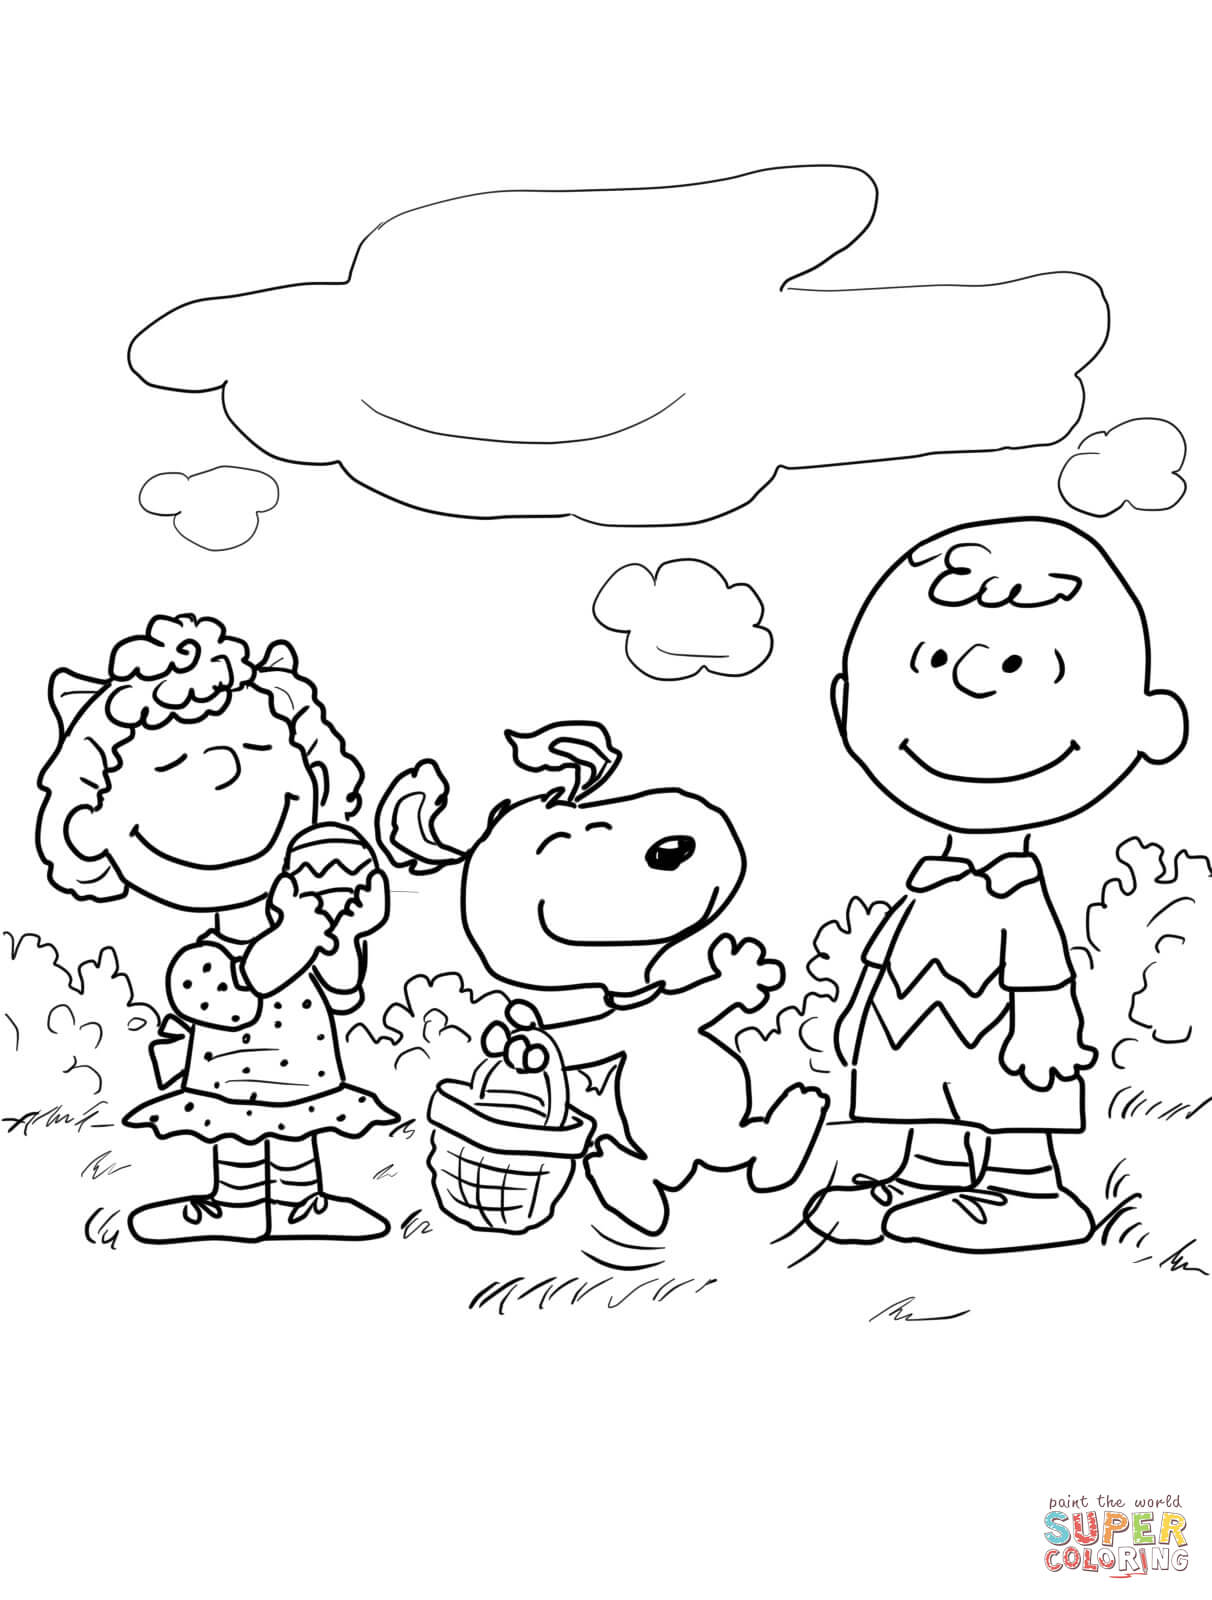 Exelent Charlie And Lola Coloring Pages Embellishment - Printable ...